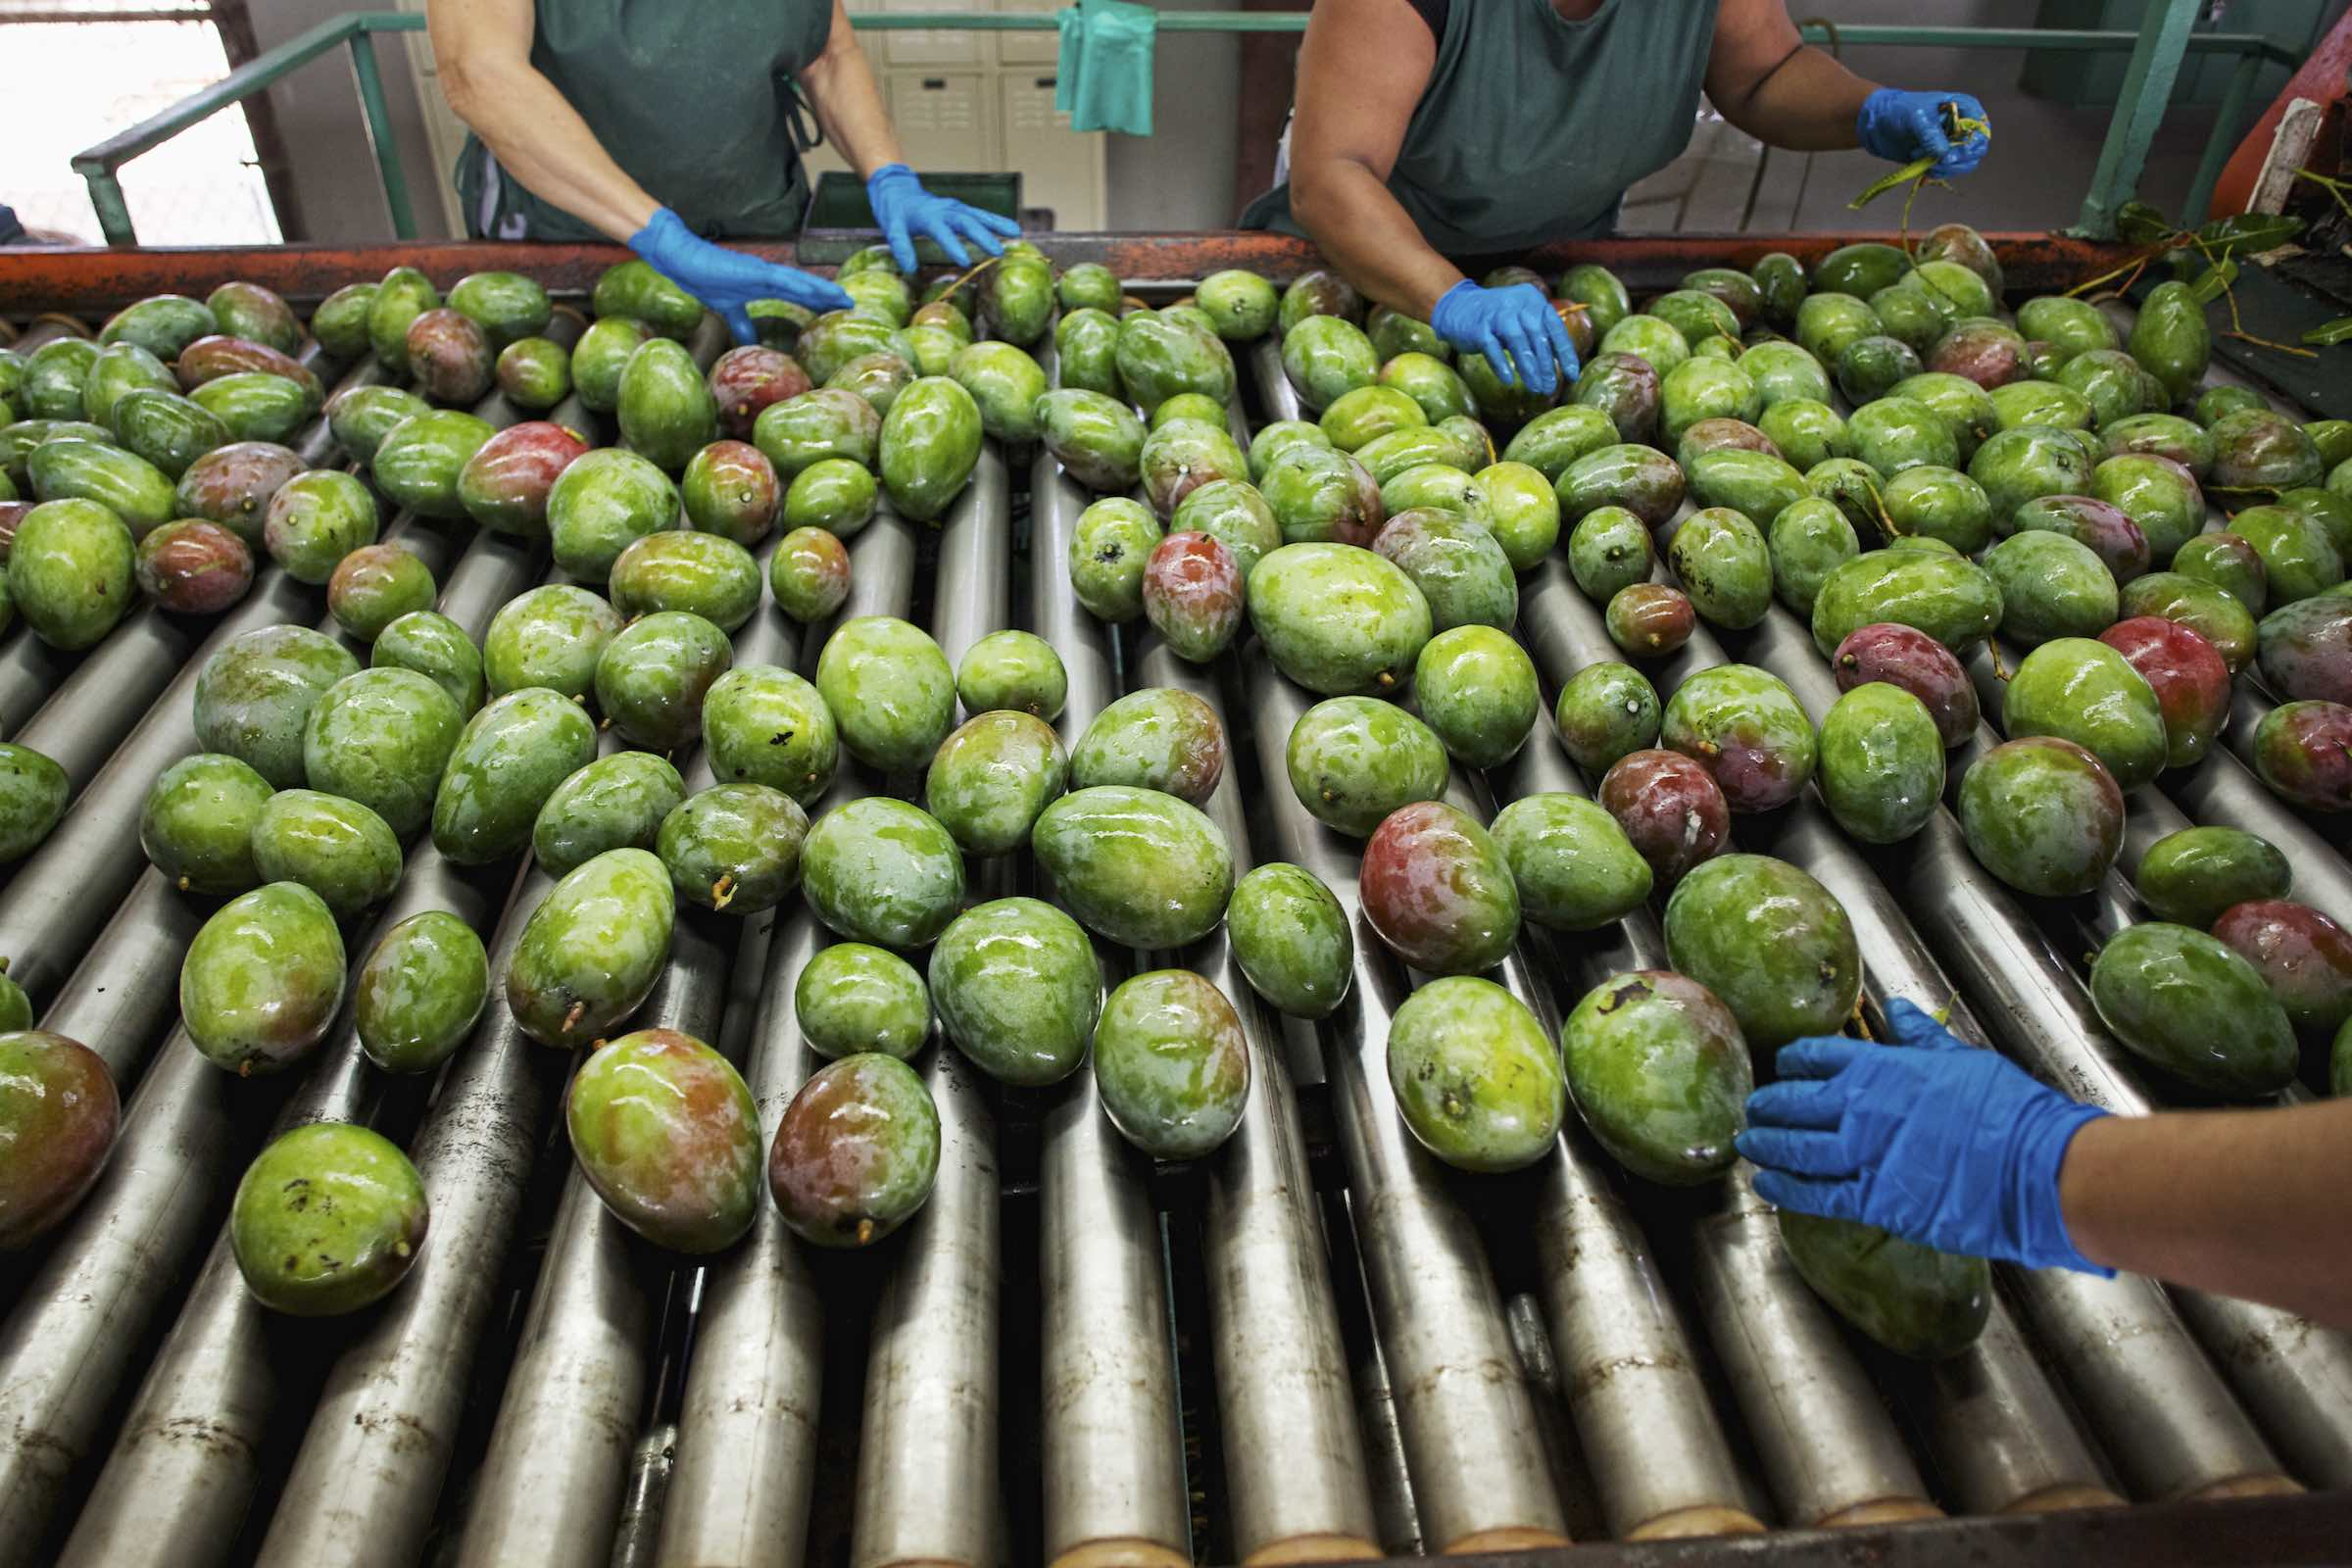 Jody Horton Photography - Mangos being cleaned and stemmed on a factory line.